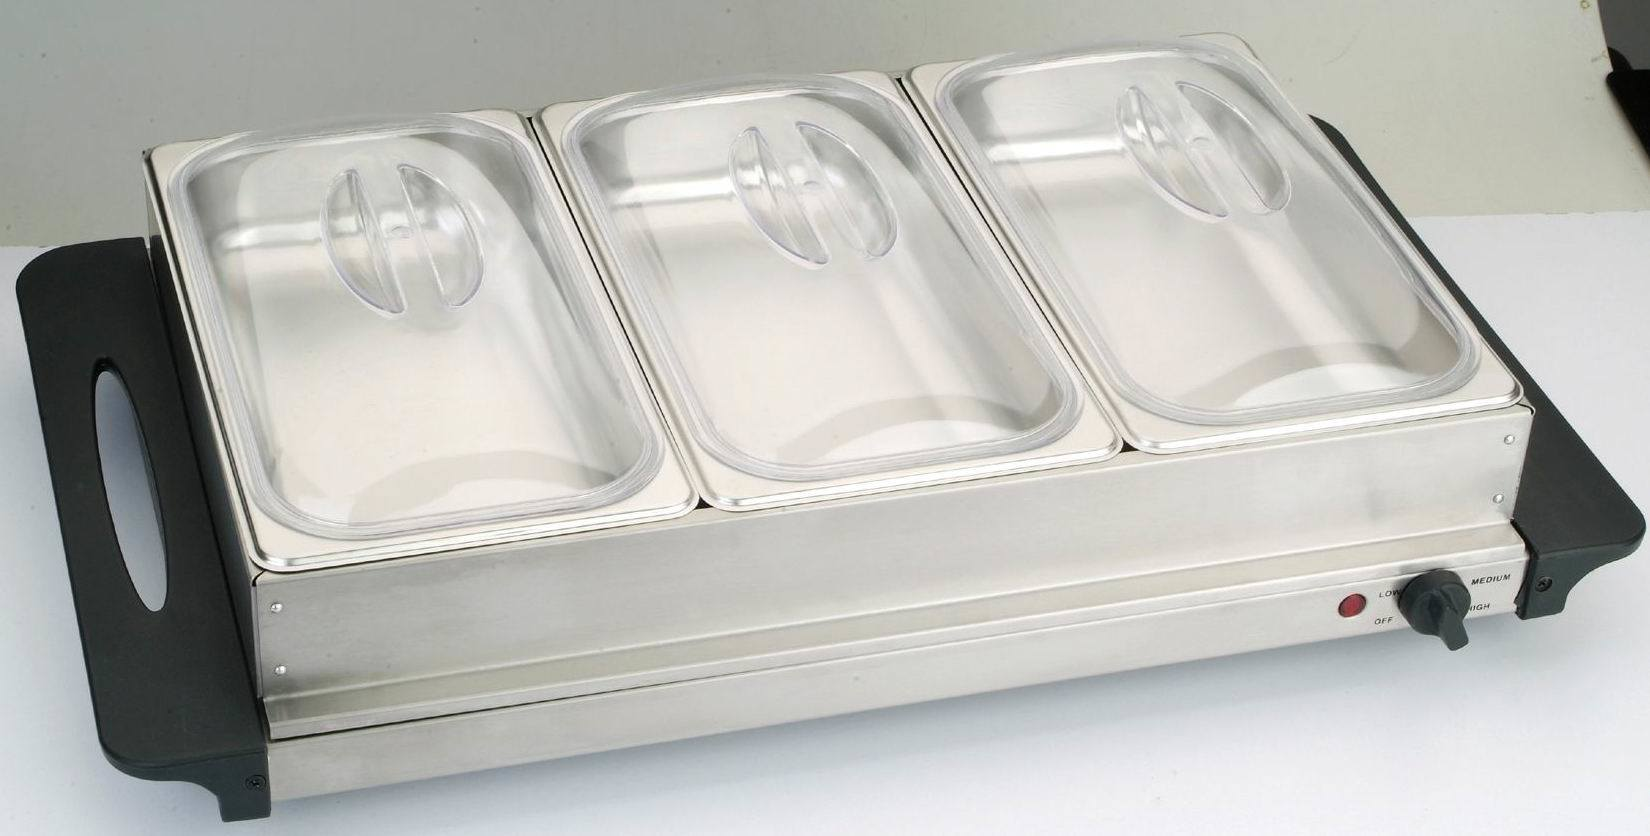 Manufacturing Carton Box Supplier China Triple Buffet Server Warmer Warming Tray 3 1 5qt